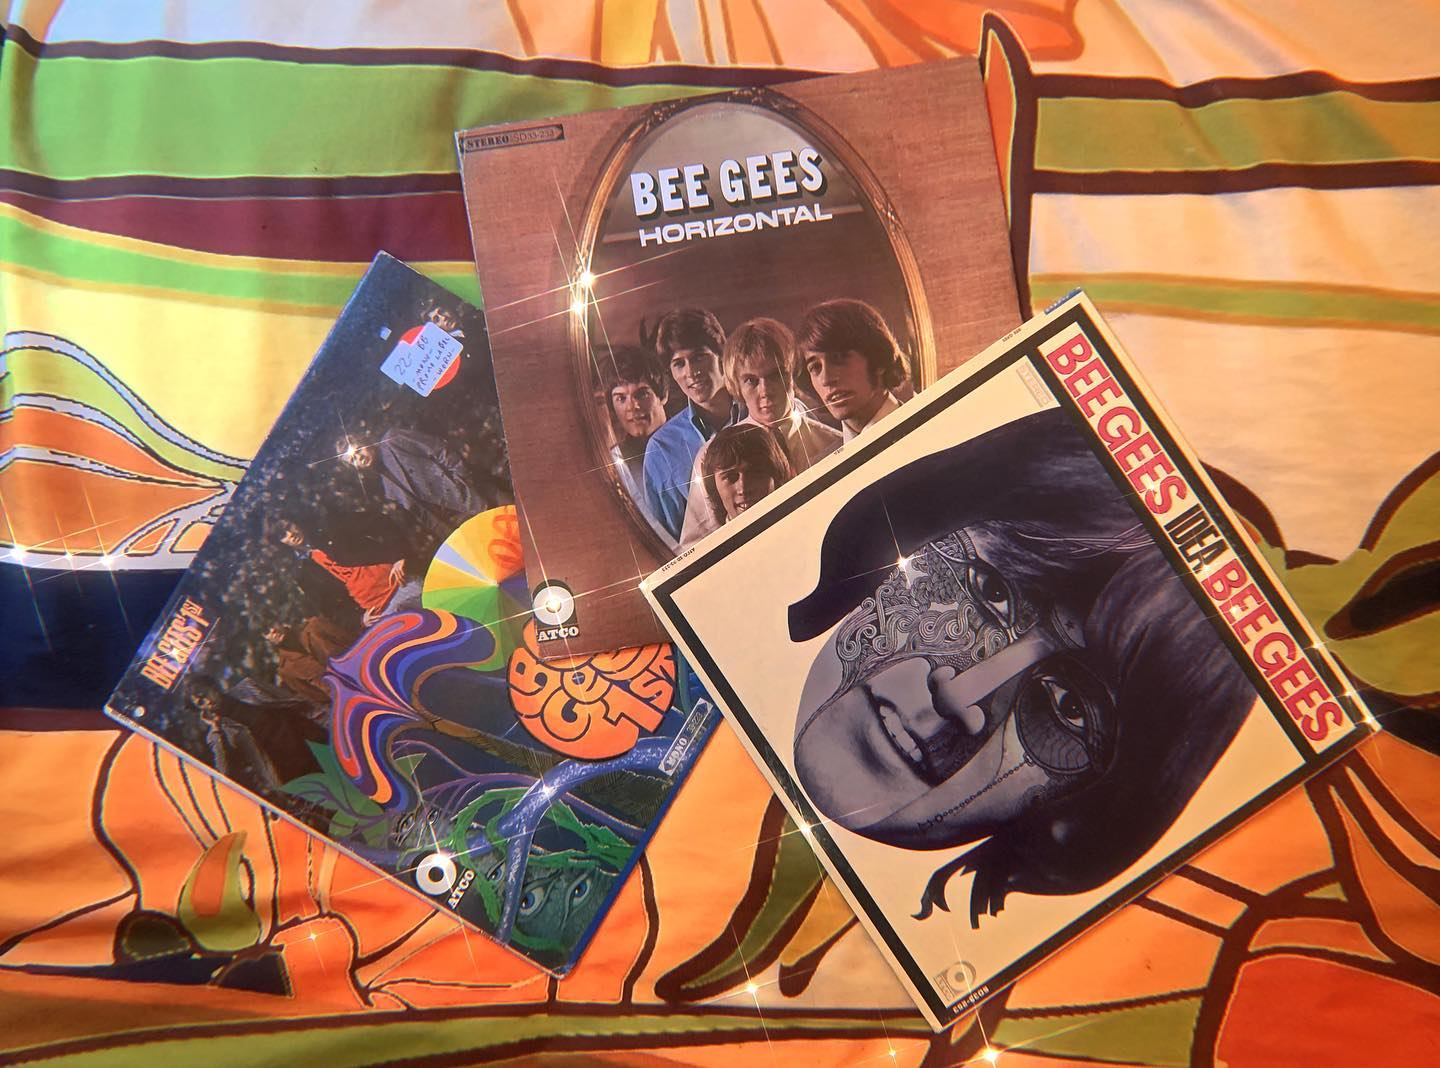 Vinyl-a-Day 22: The Bee Gees - 1st, Horizontal & Idea (Polydor/Atco, 1967-1968)